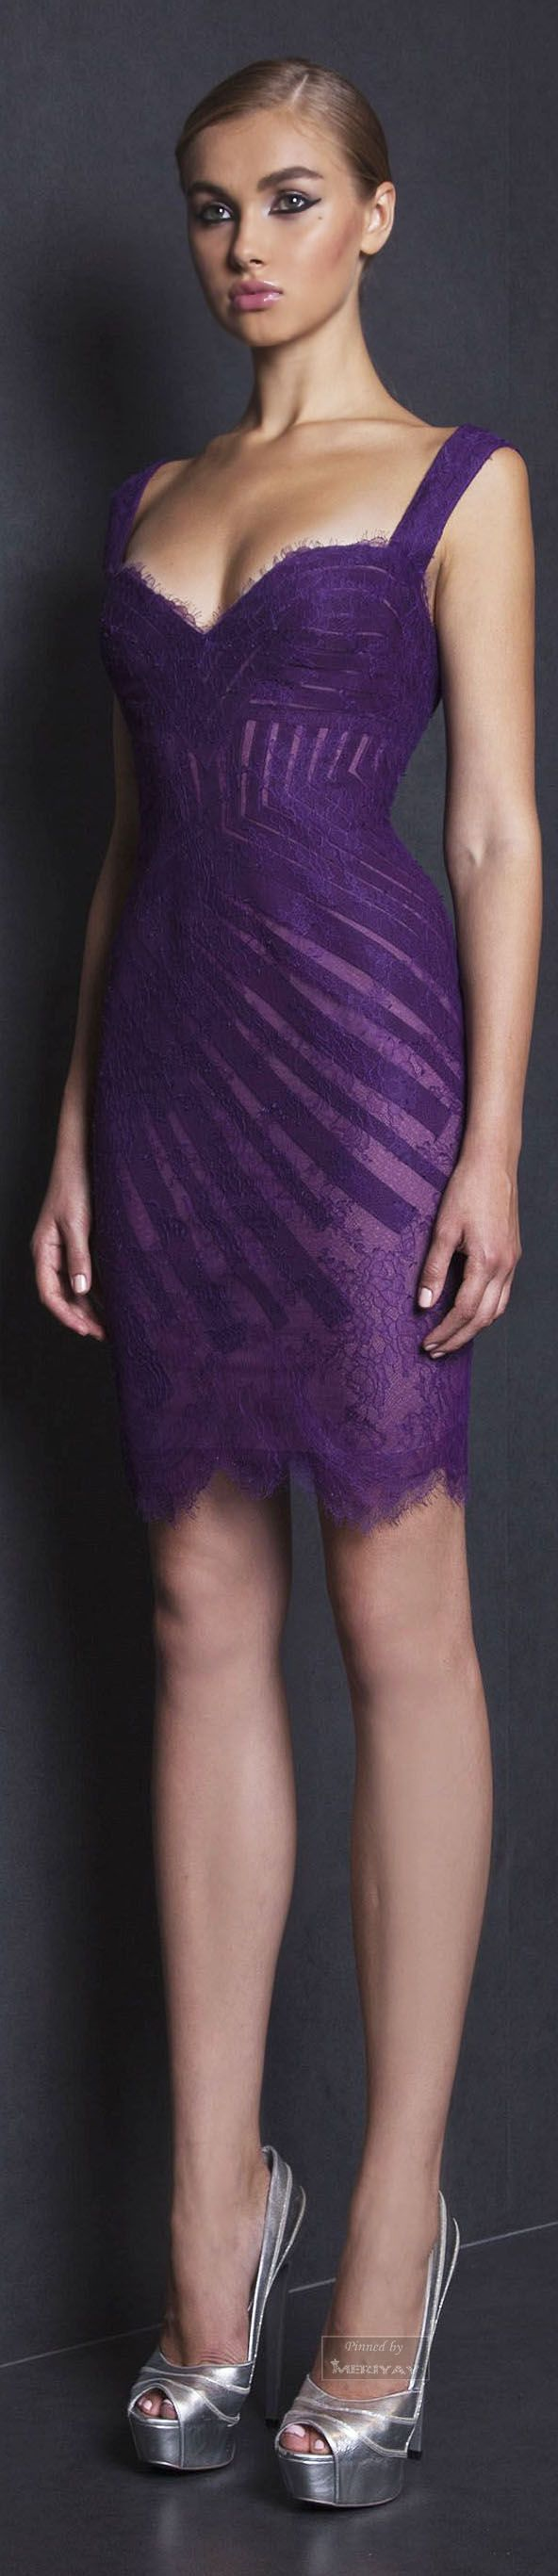 Sexy Cocktail dress..Tony Ward Spring-summer 2015.